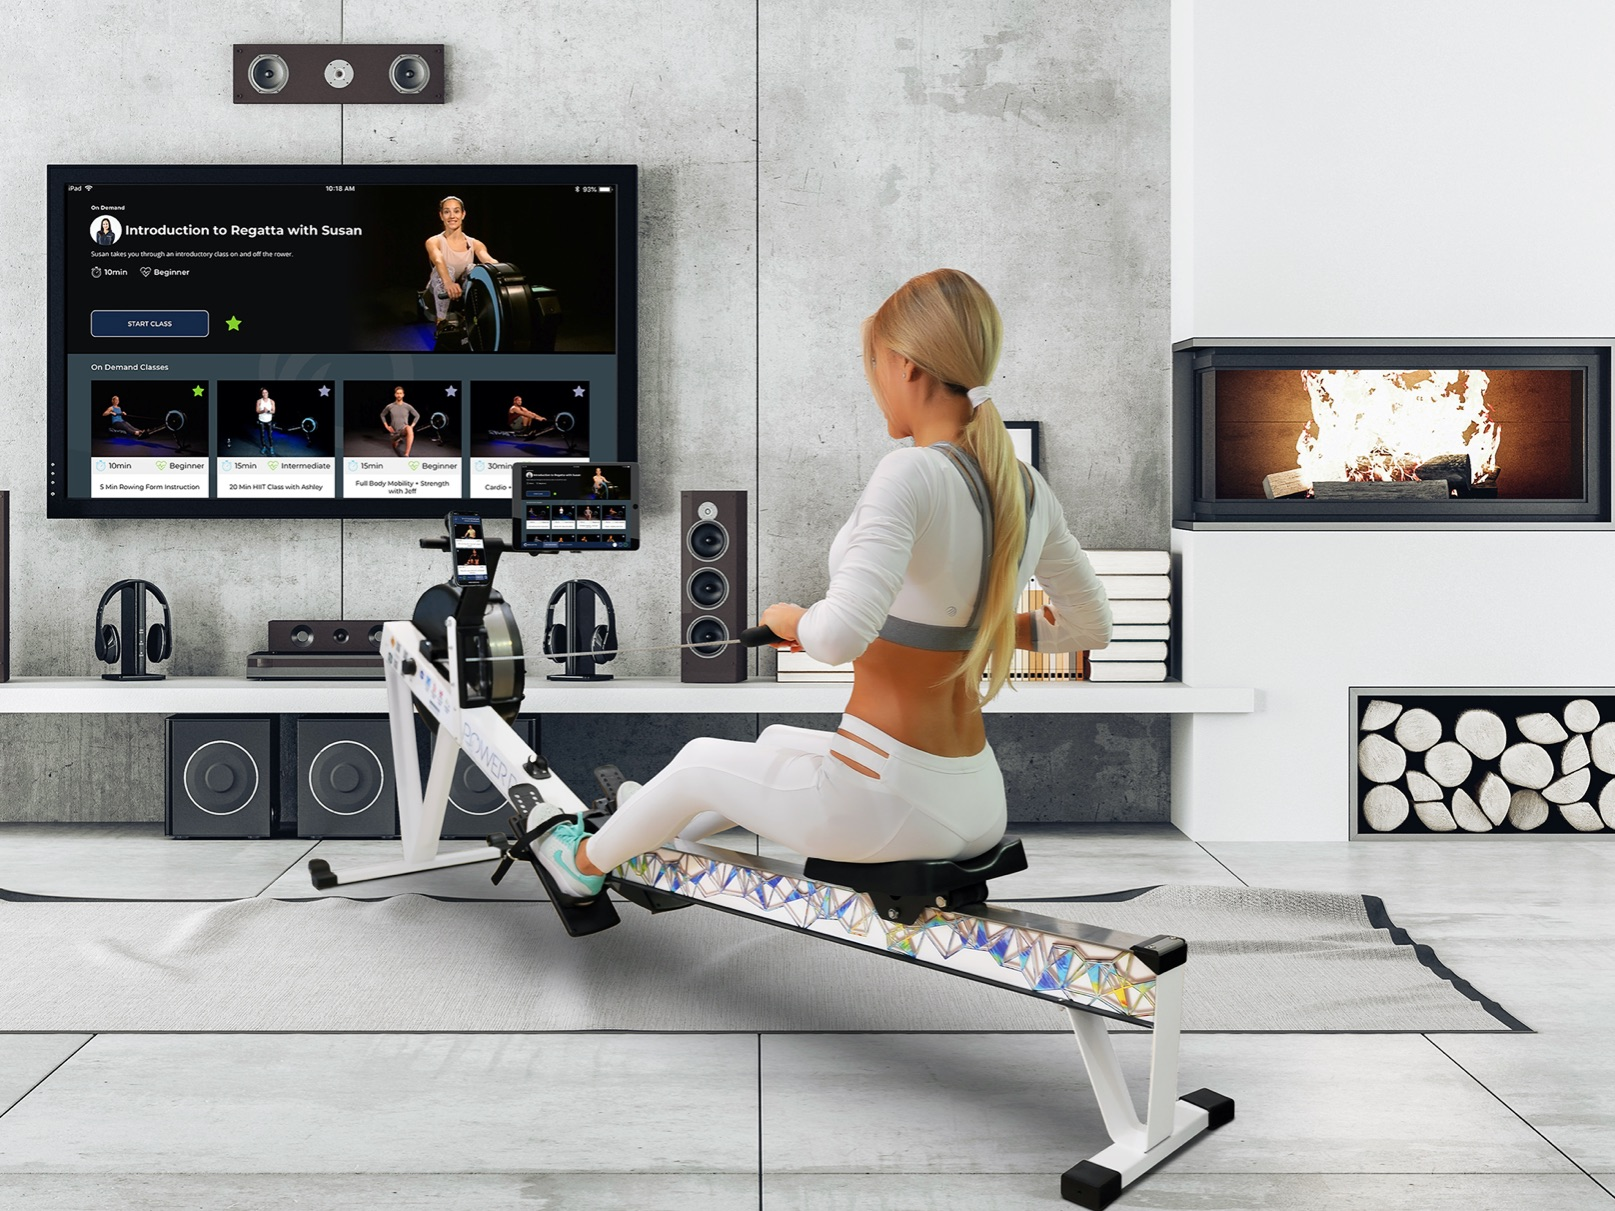 concept 2 model rowing machine graphics